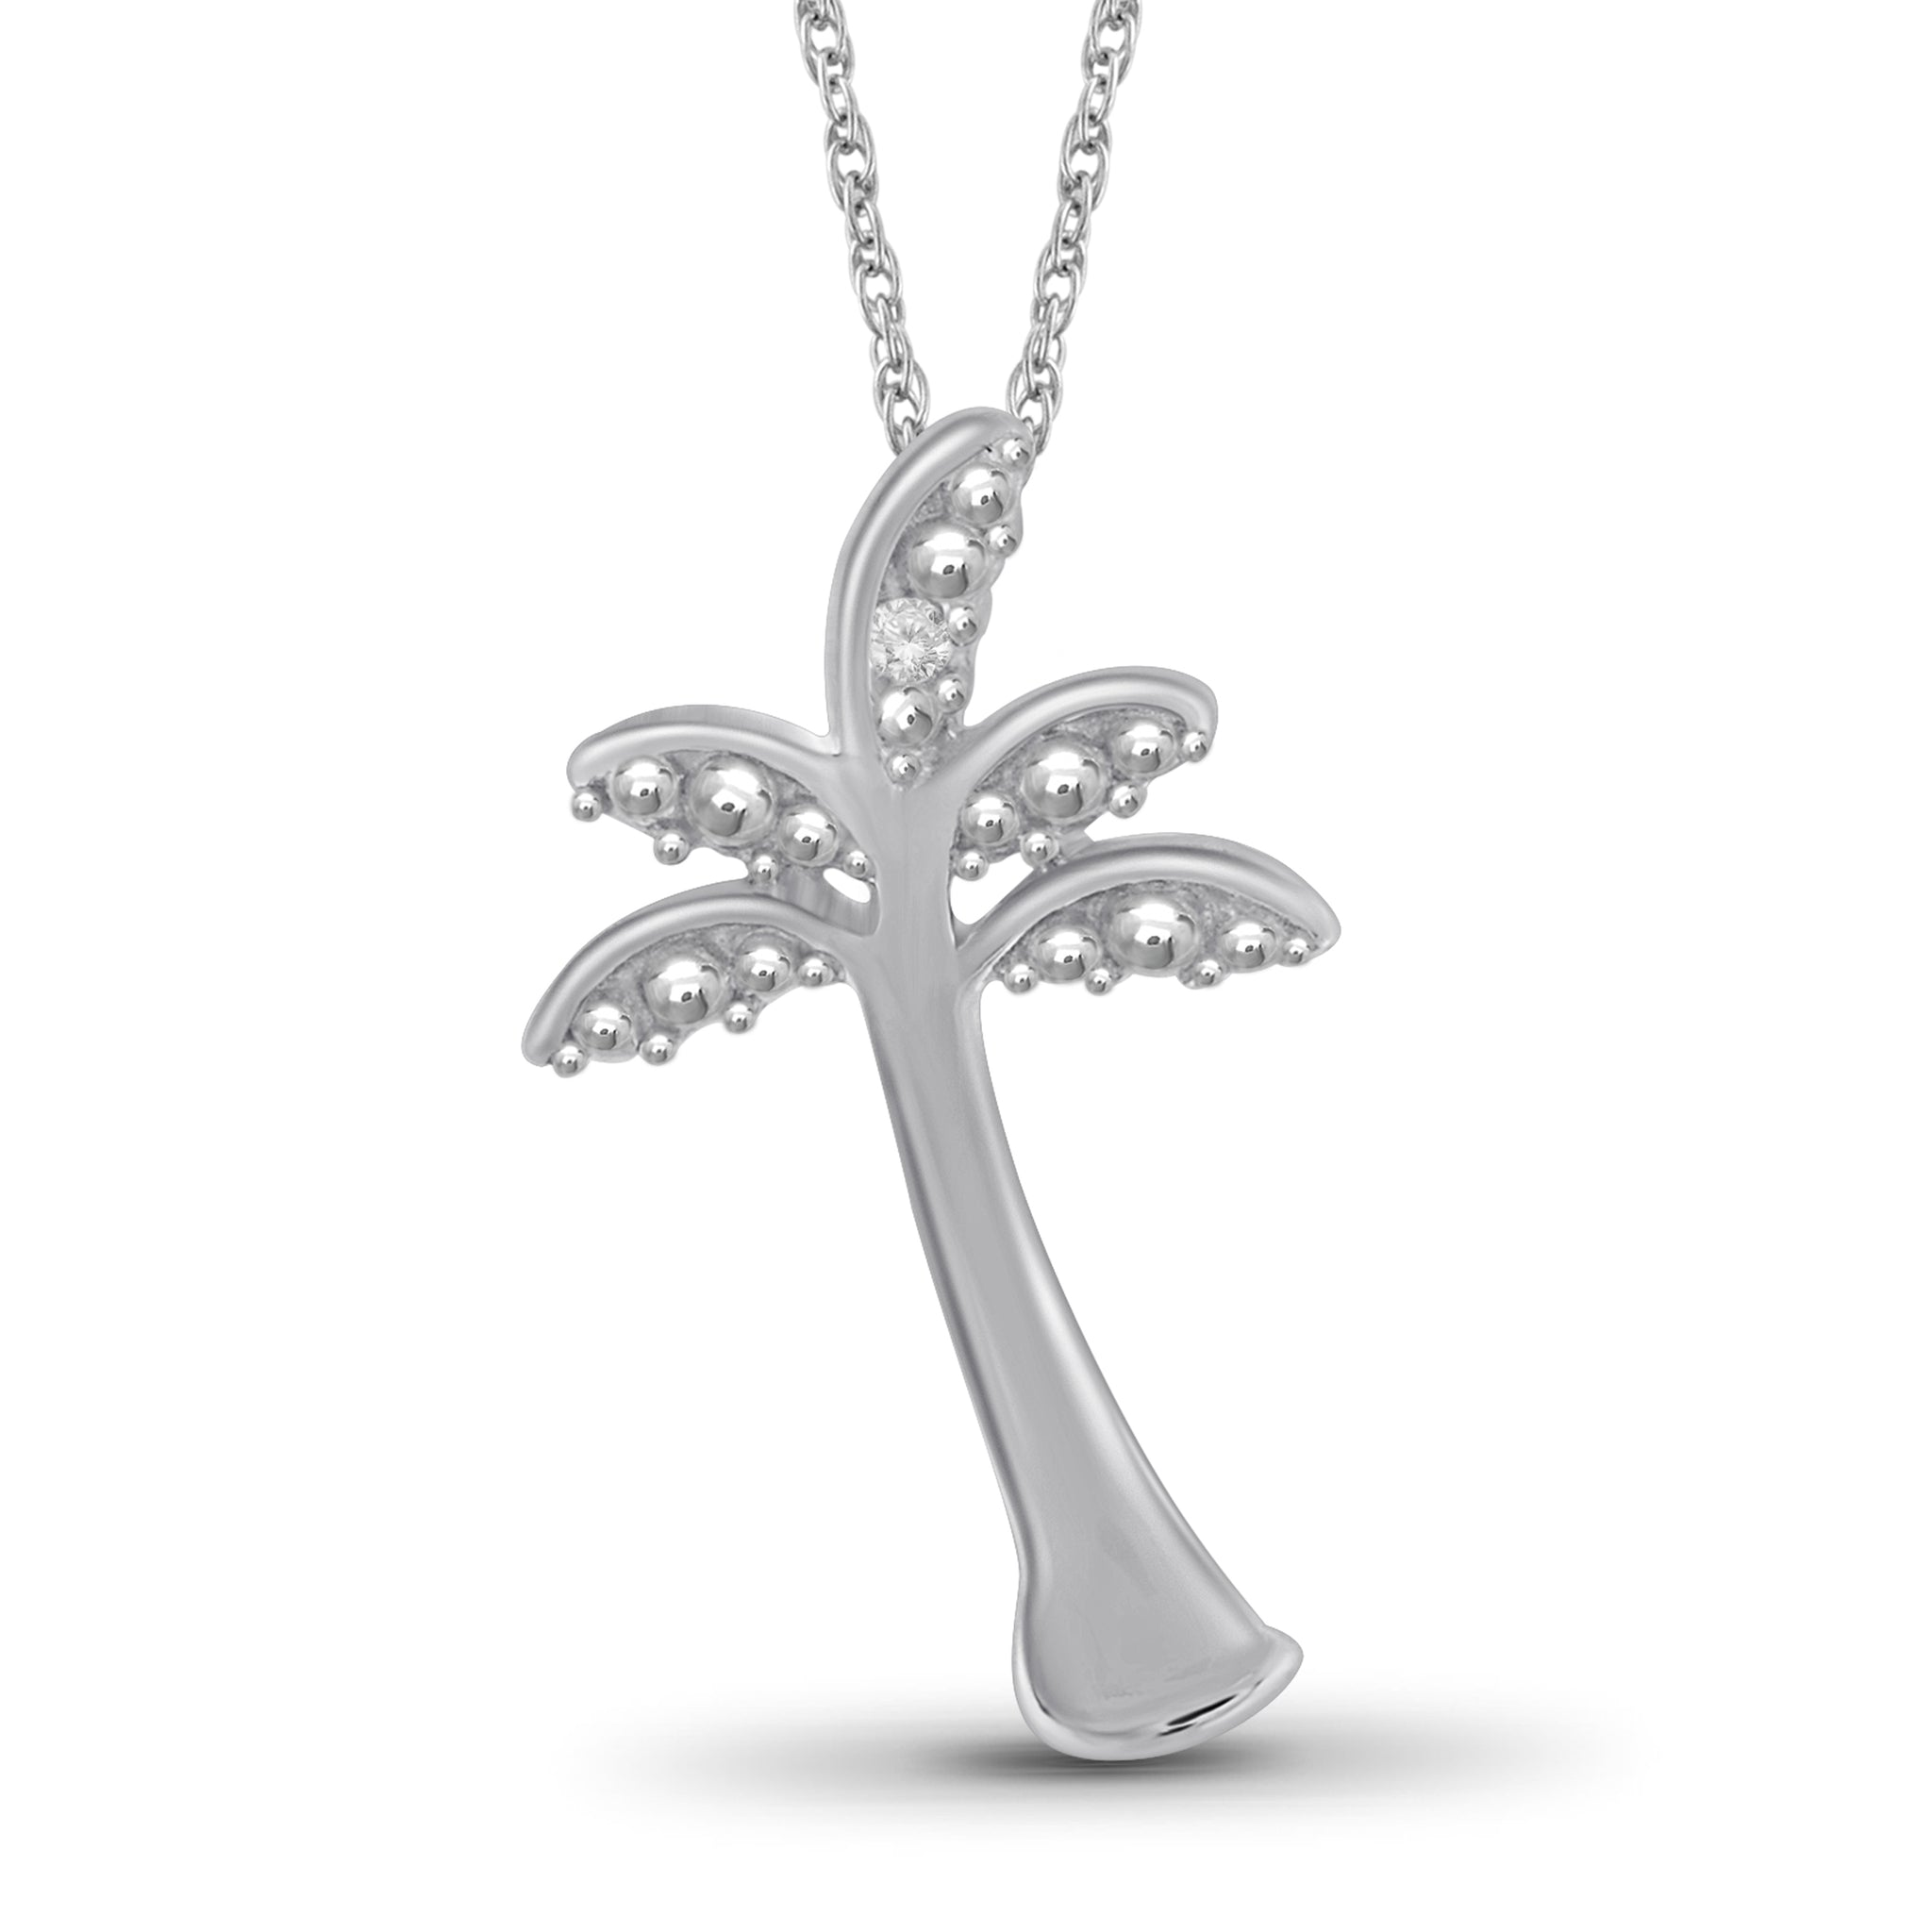 JewelonFire Accent White Diamond Palm Tree Pendant in Sterling Silver